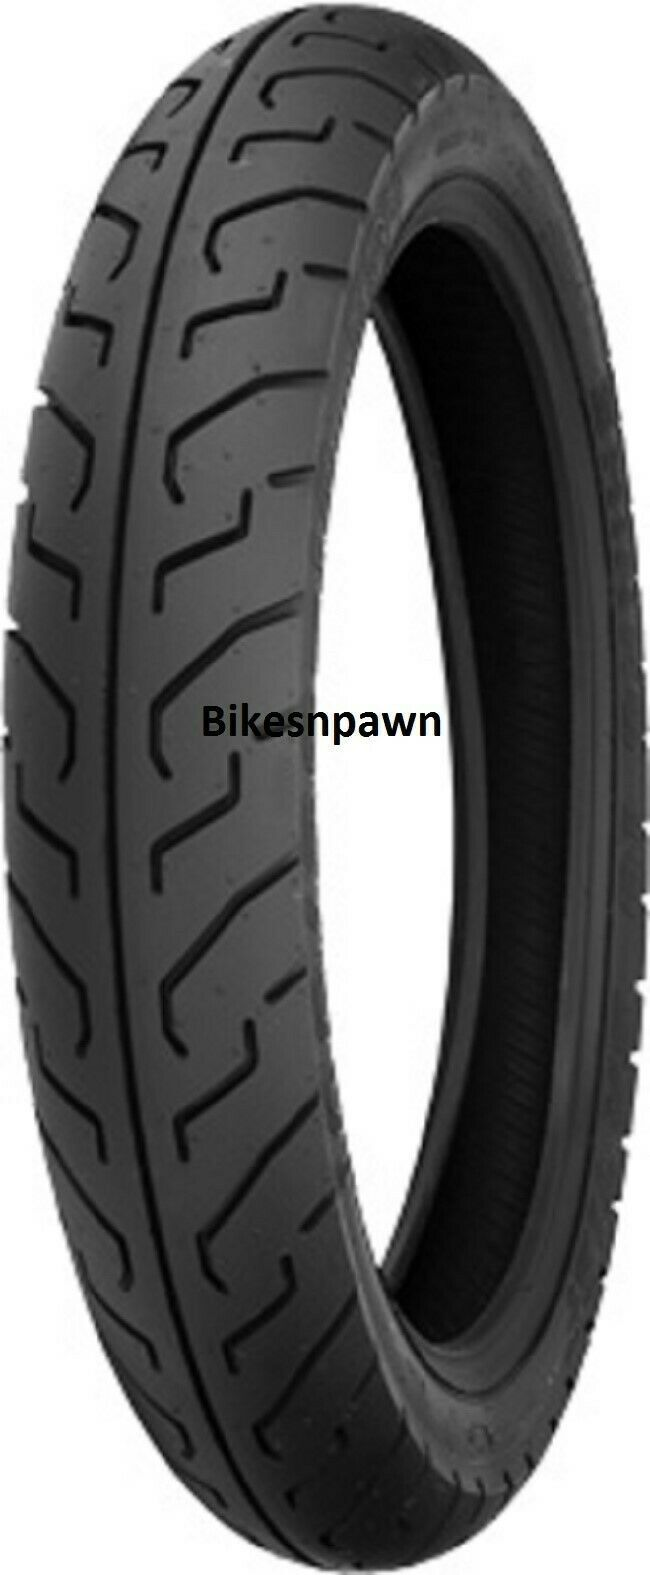 New Shinko 712 100/90-19 Front Tire 57 H Tubeless